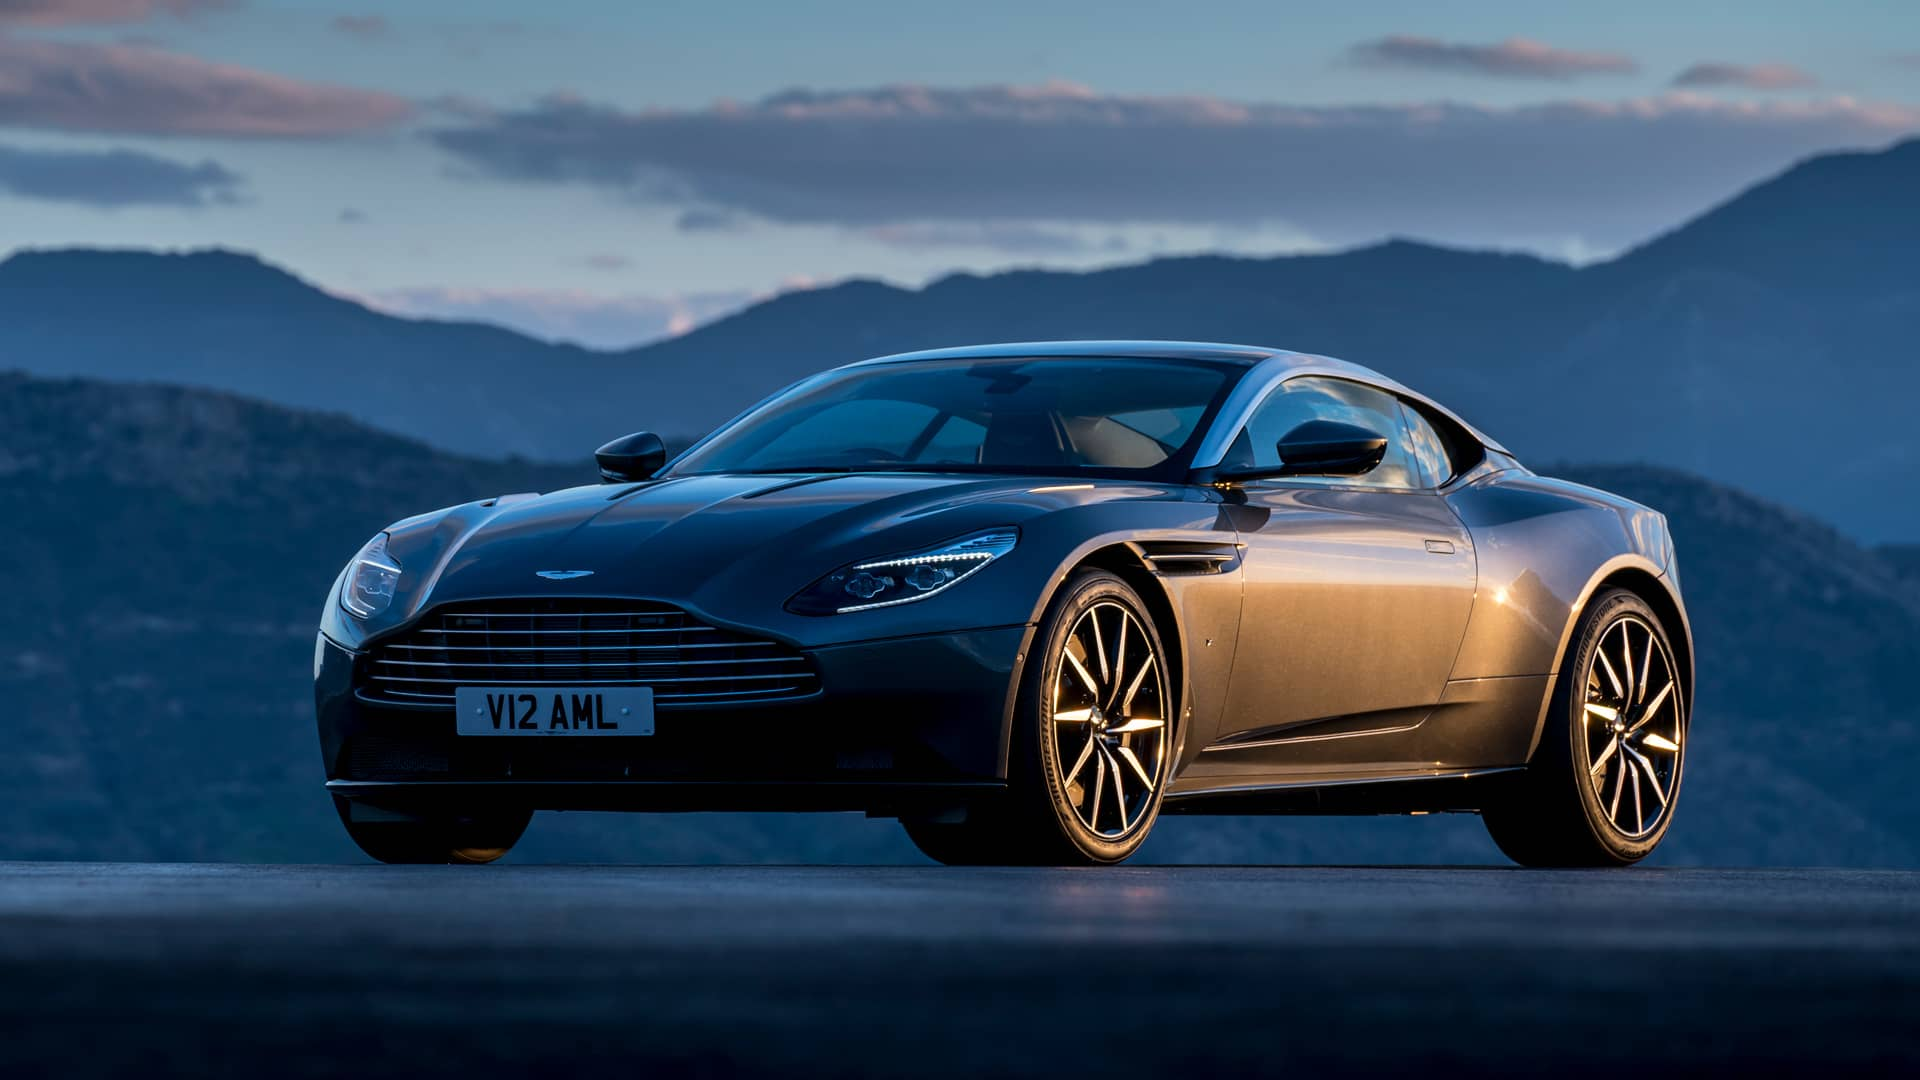 Aston Martin Db11 Adm Capital